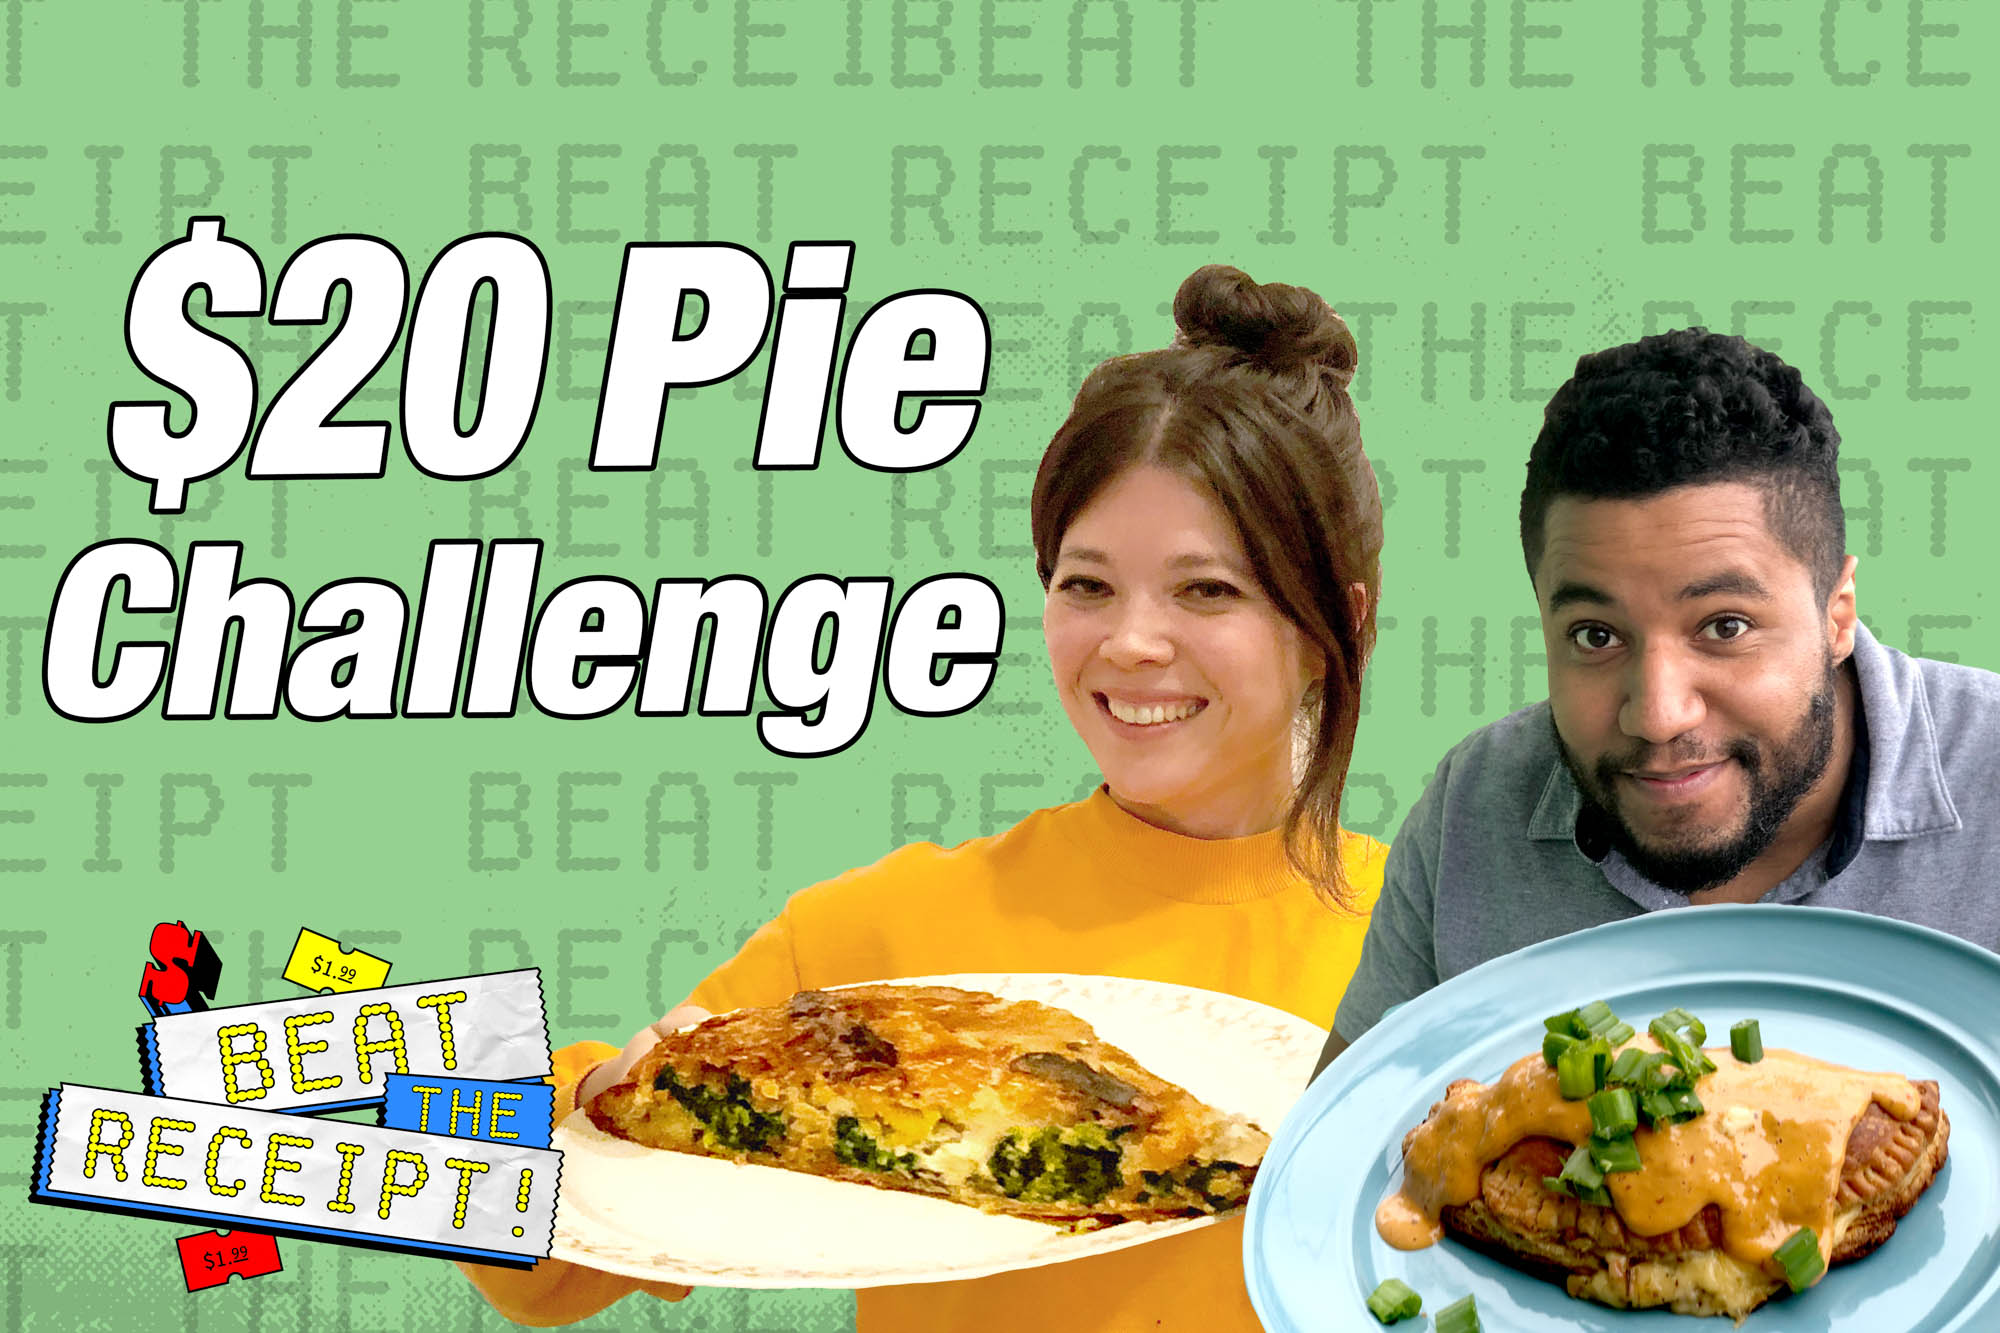 Beat the Receipt Pie Challenge